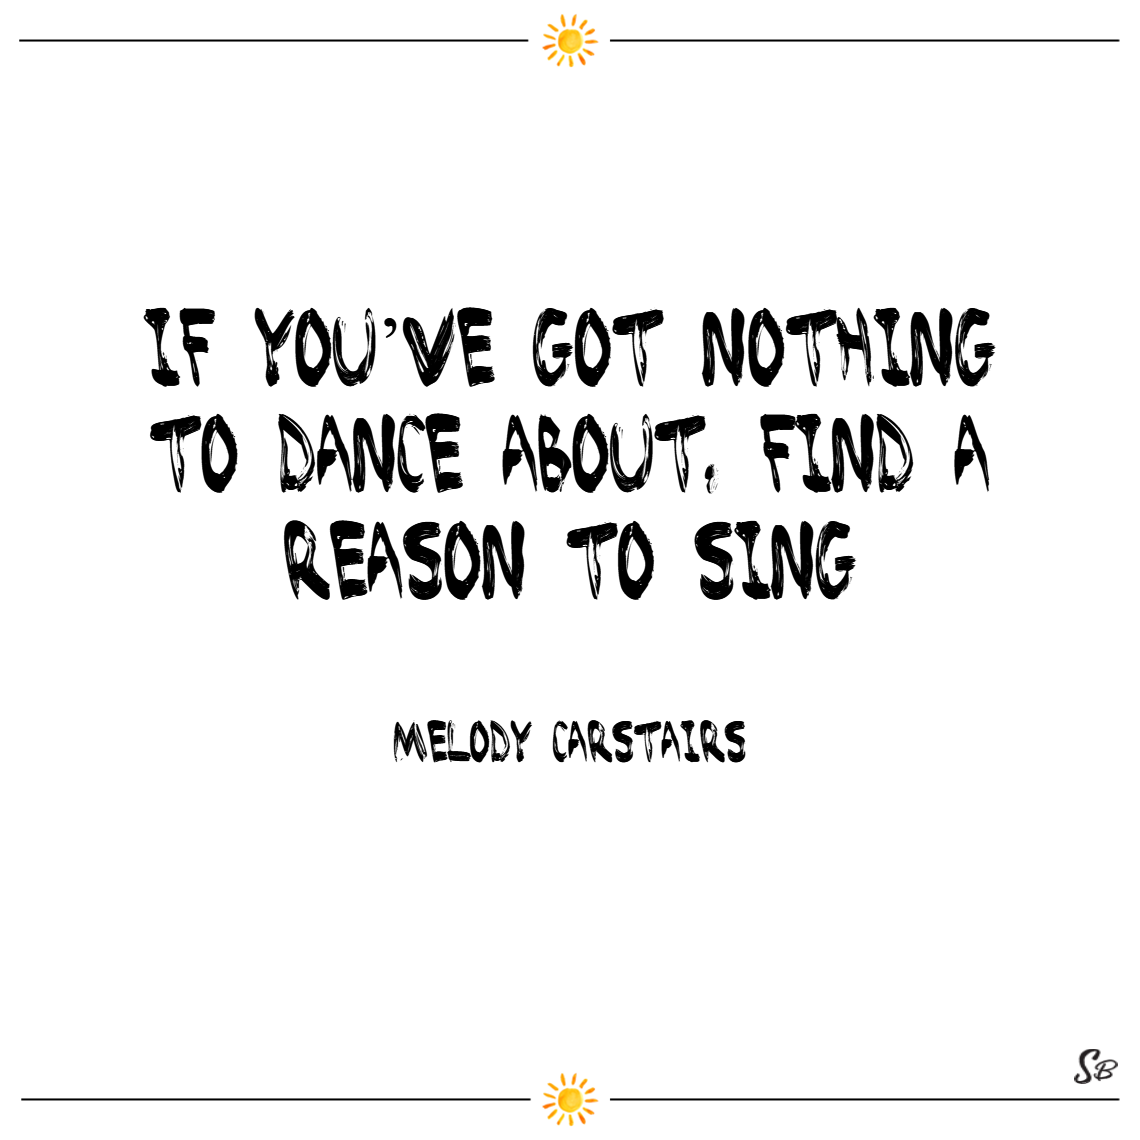 If you've got nothing to dance about, find a reason to sing. – melody carstairs